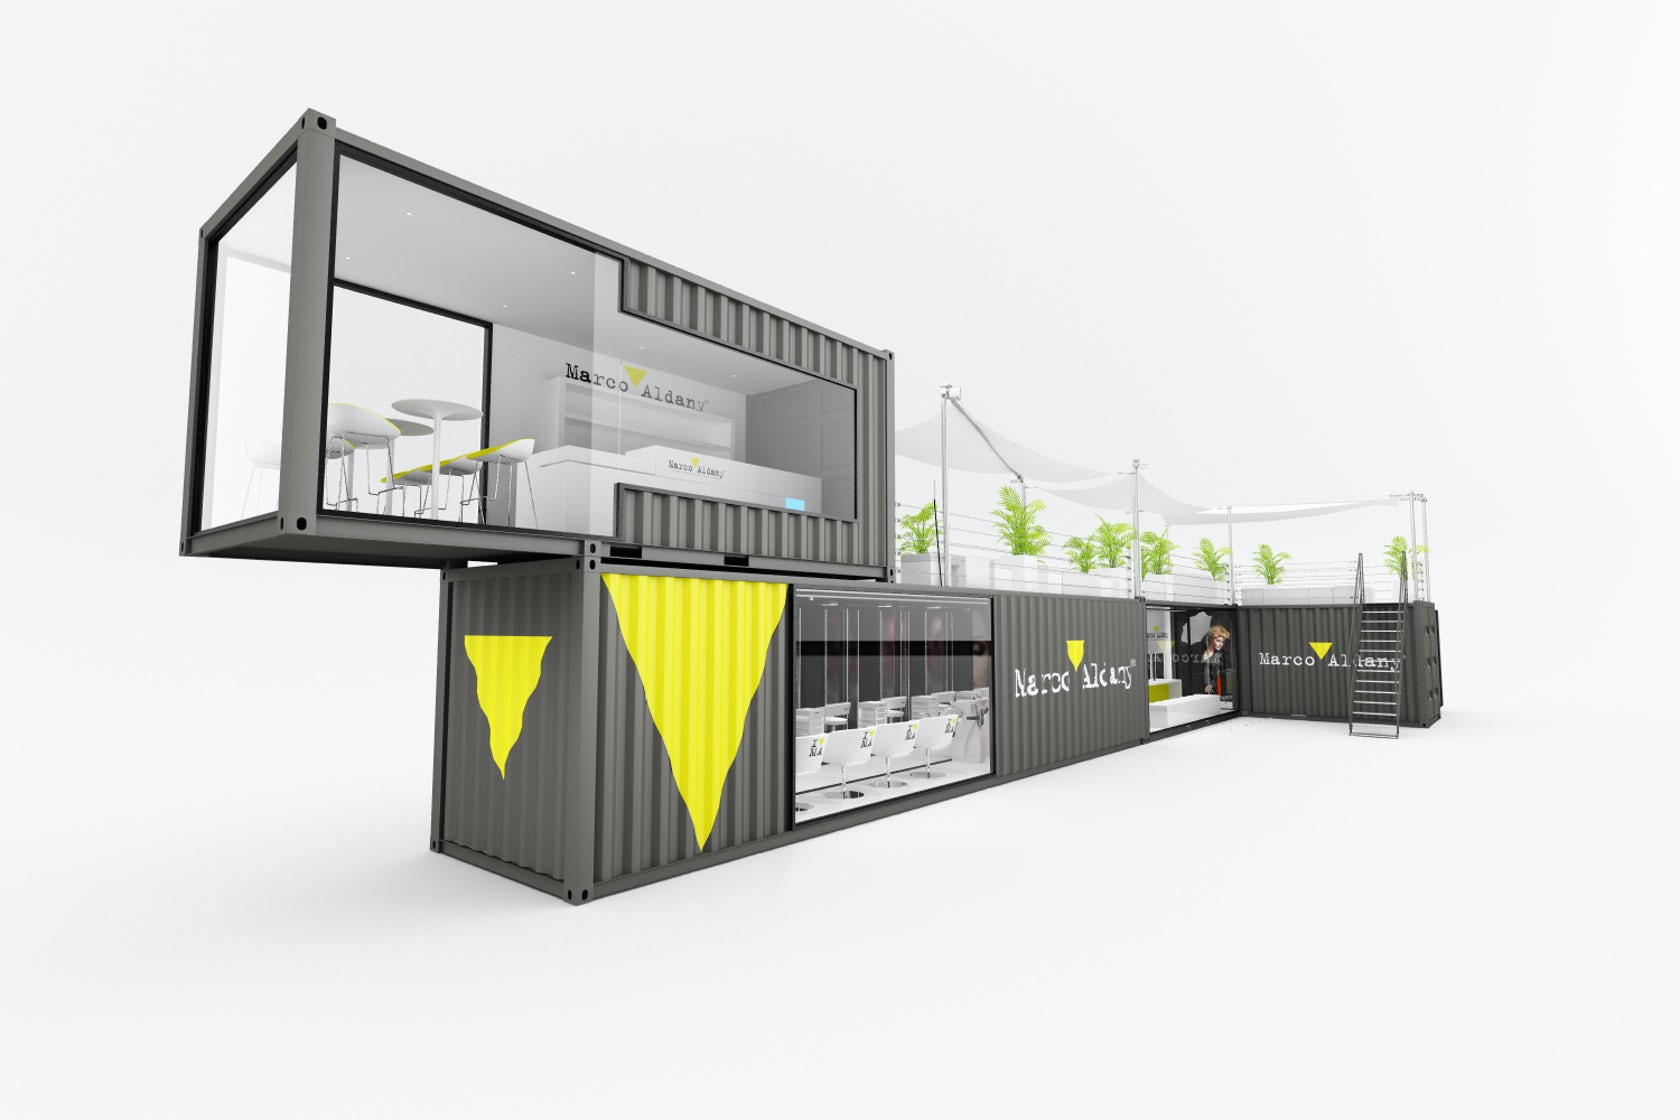 Marco aldany pop up beauty salon architizer for Container wohnhaus